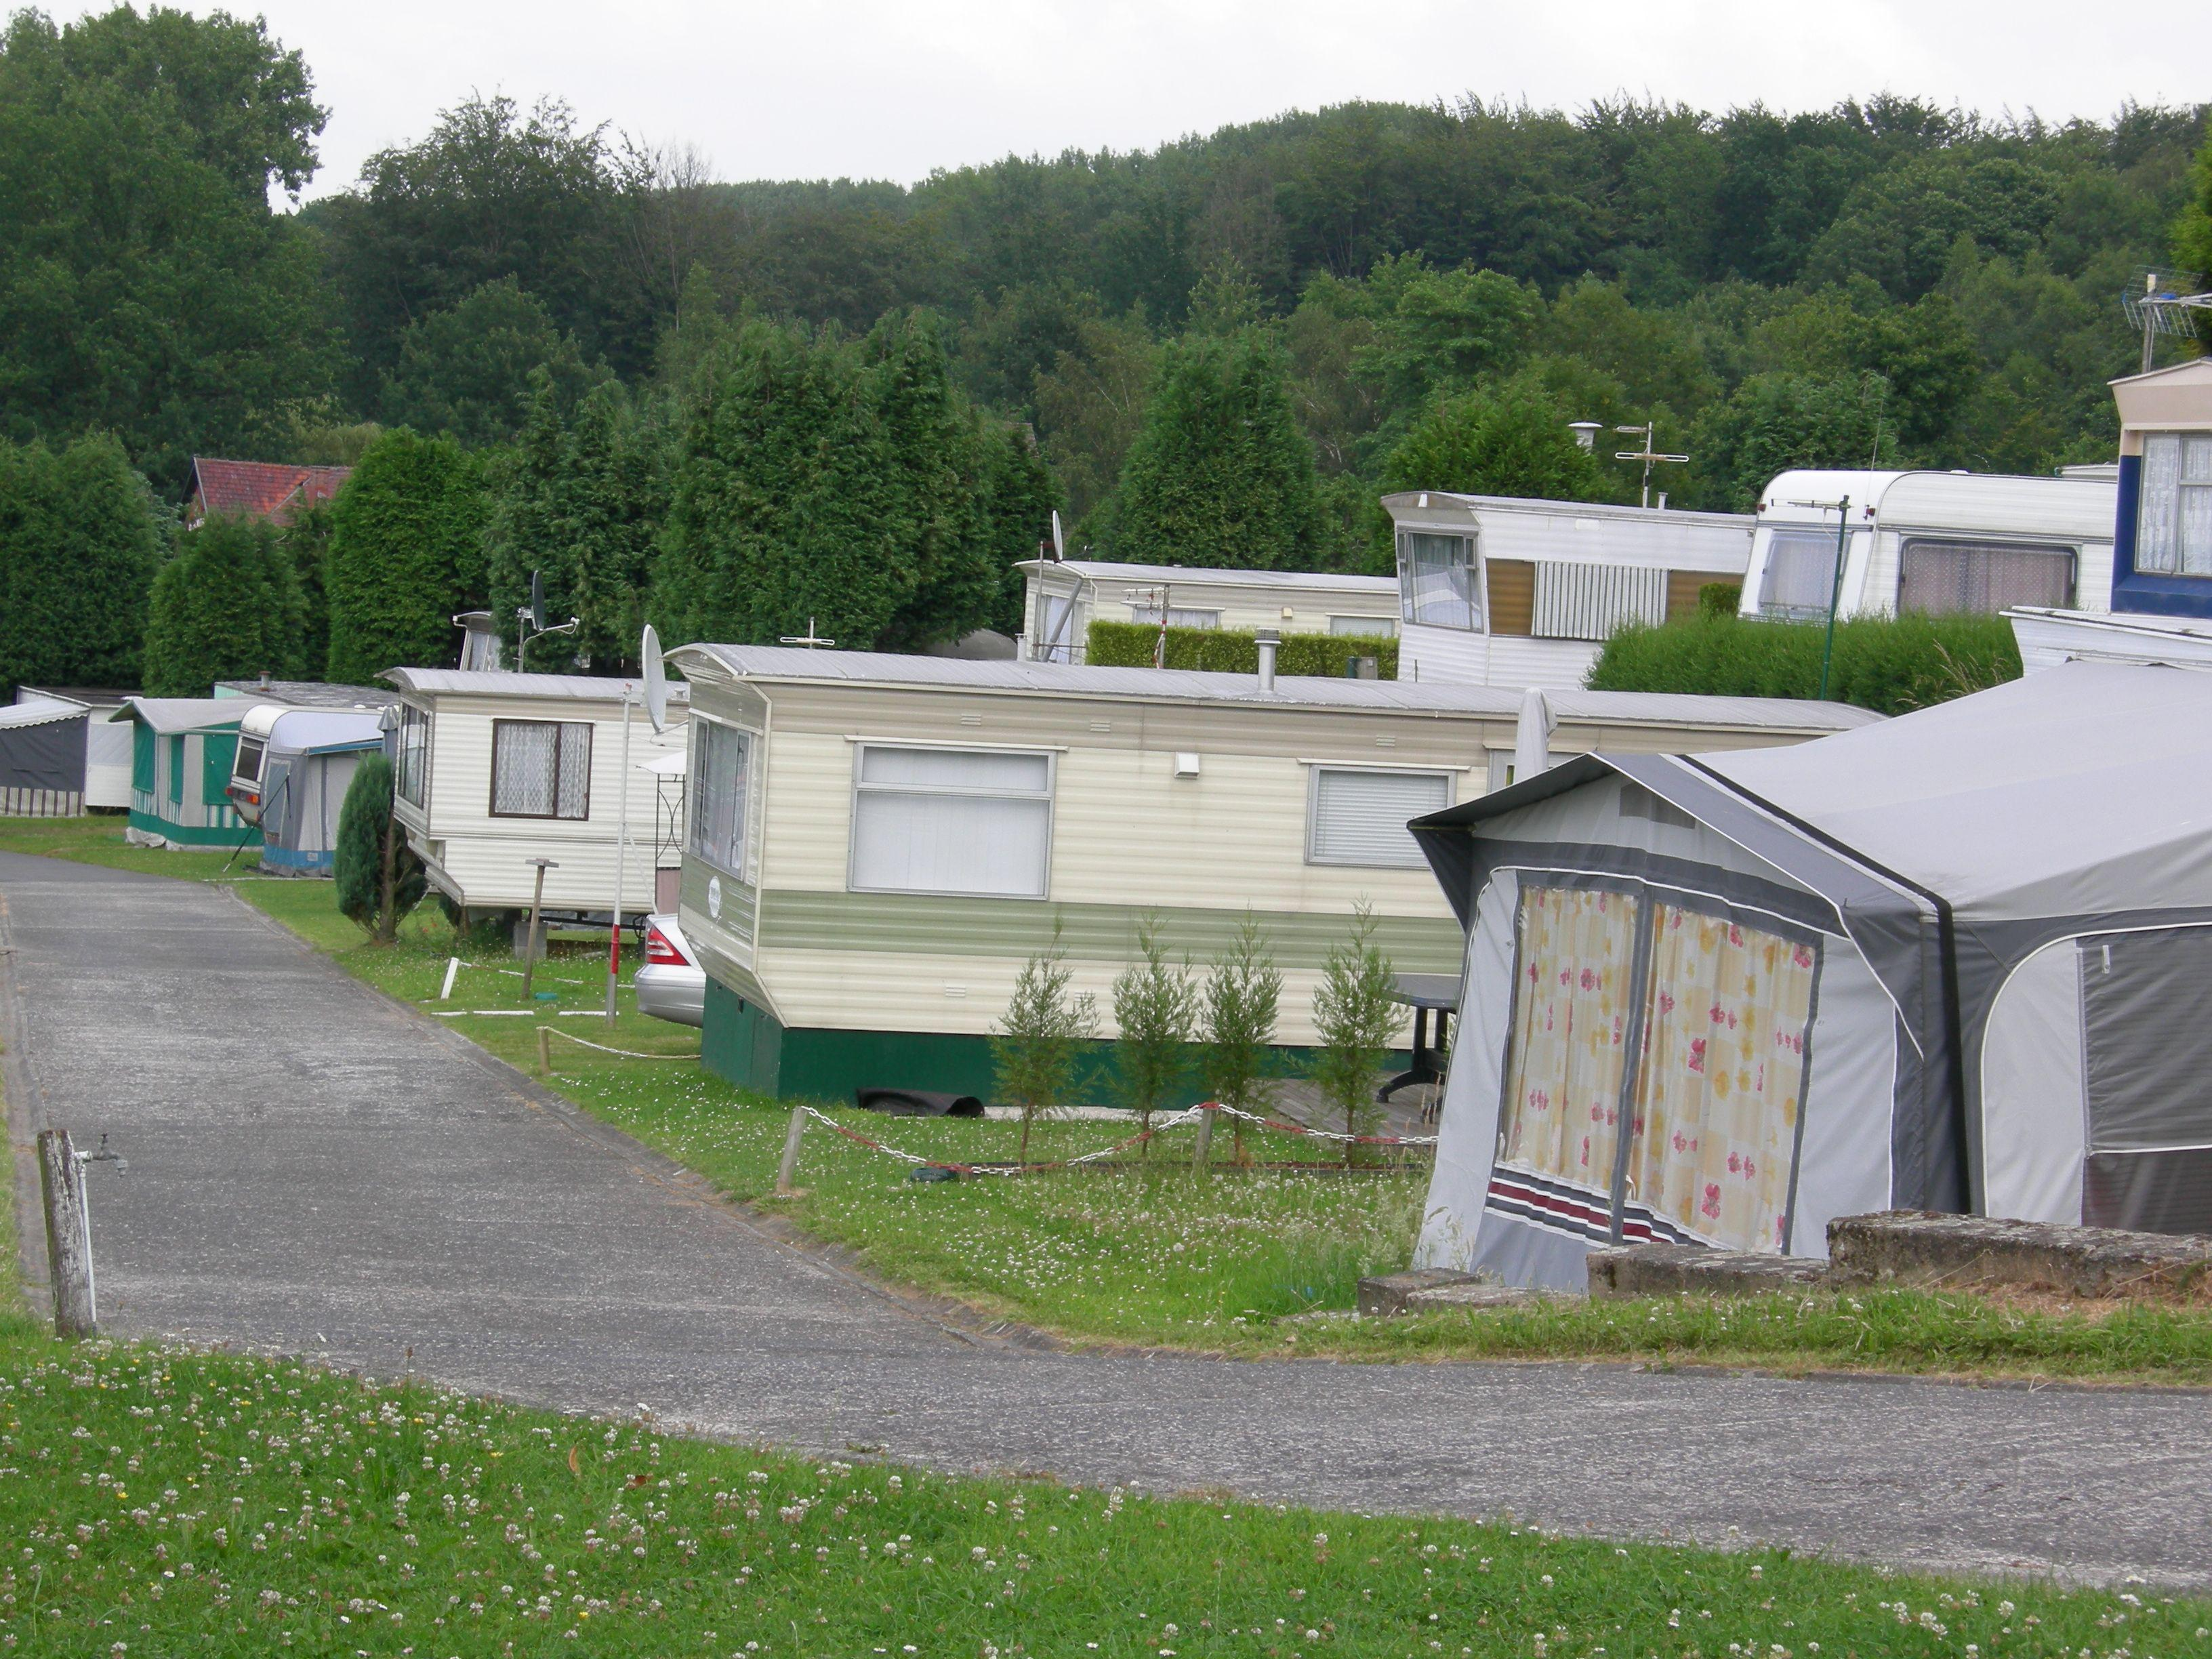 Campsite In The Heart Of The Flemish Ardennes, On The Kluisberg, Next To The  300 Ha Large Kluisbos And Barely 300 M Away From The Recreation Park With 3  ...